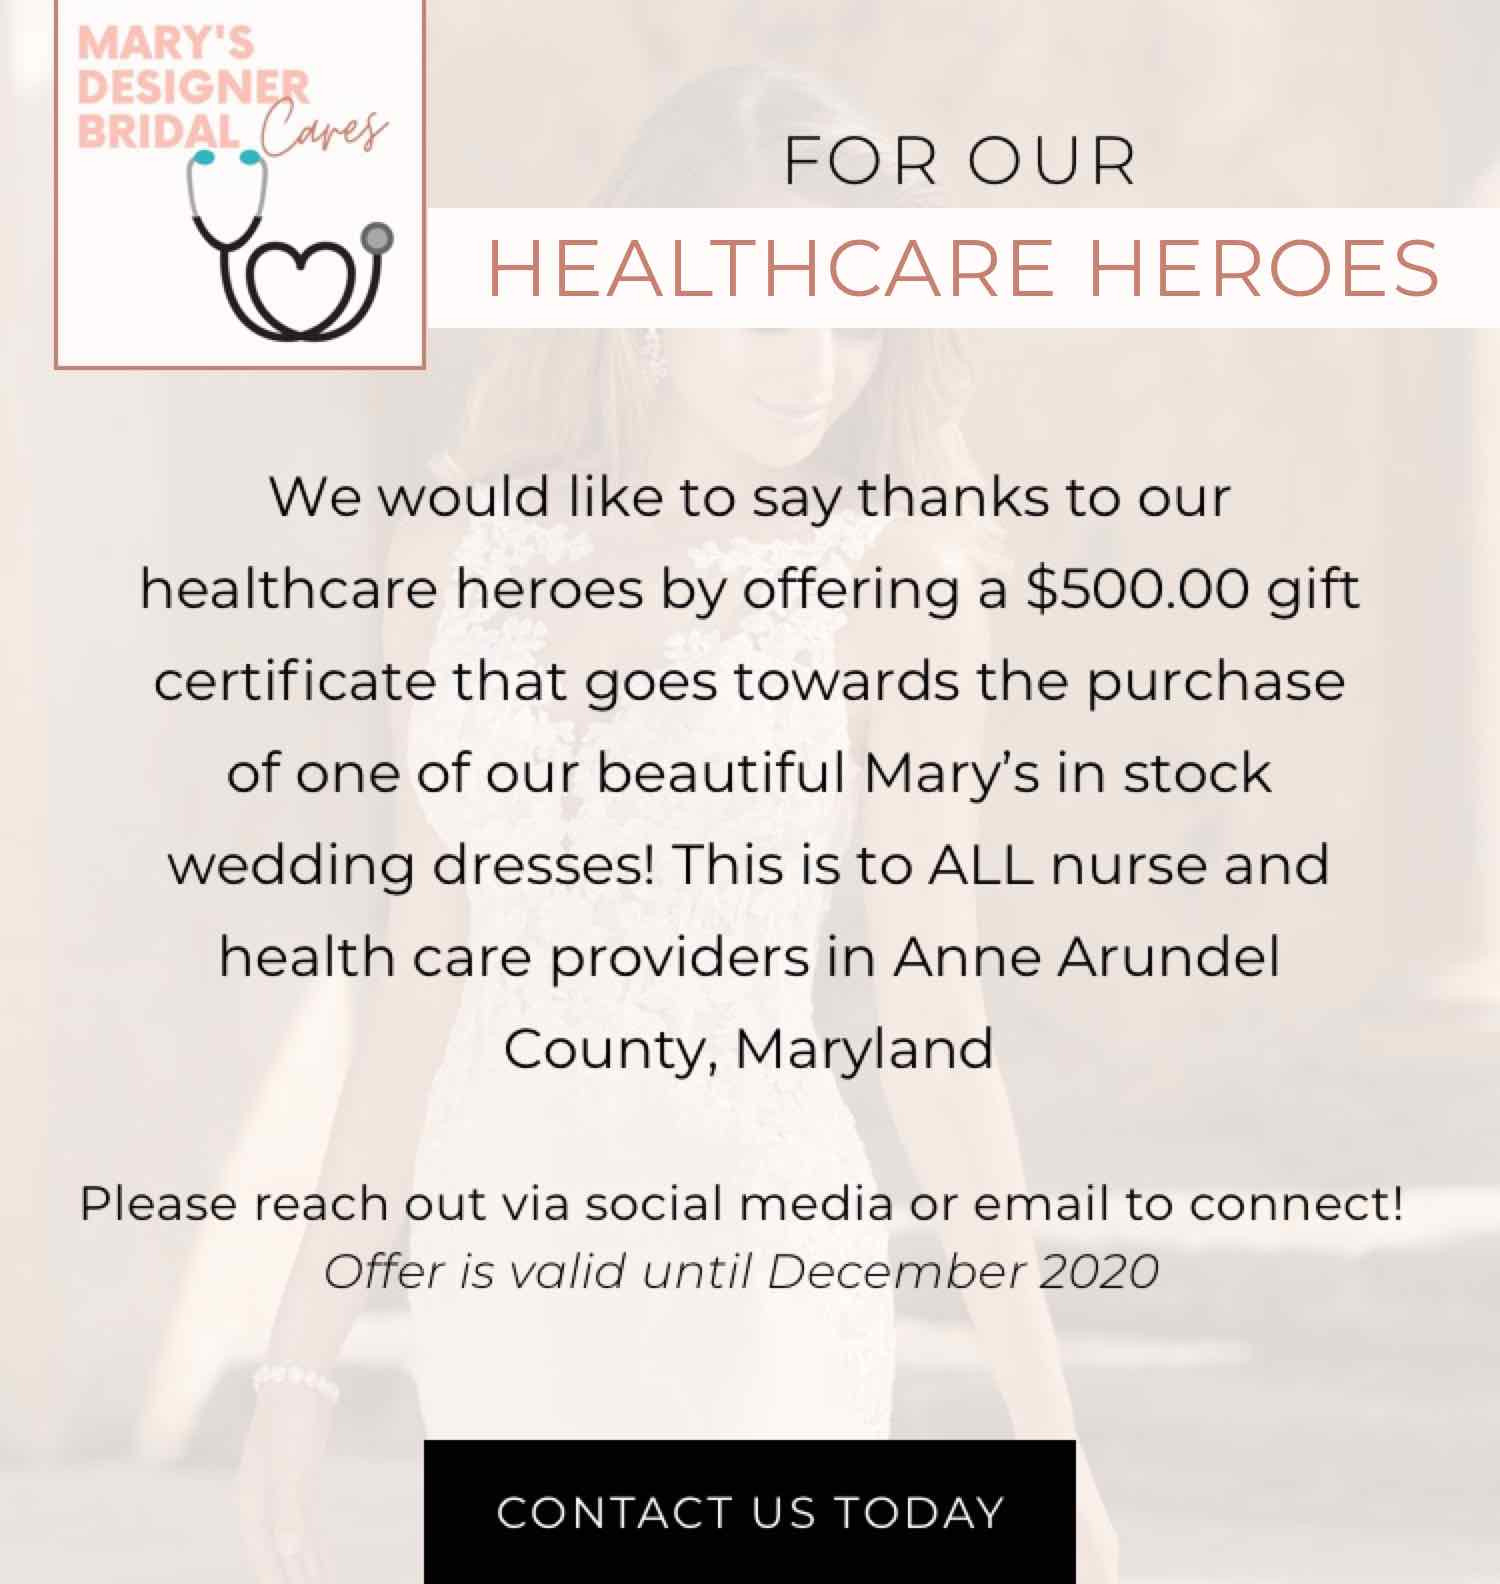 Healthcare heroes. $500 discount towards a wedding dress for those working in healthcare industry. mobile image.